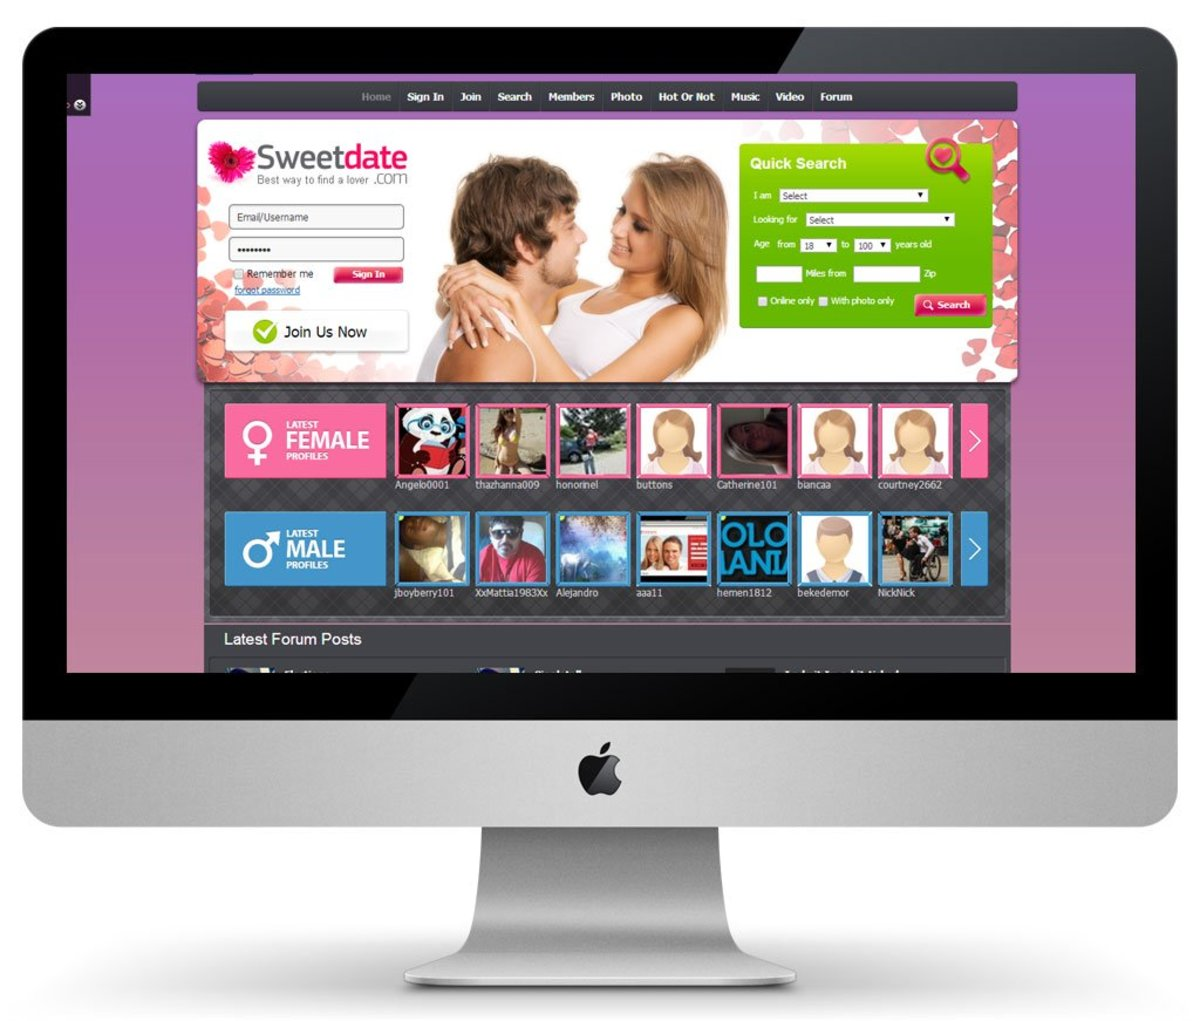 make your own dating site Dating sites are popular, but why promote someone else's site when you can have your own read more at workonlinefromhomenet.